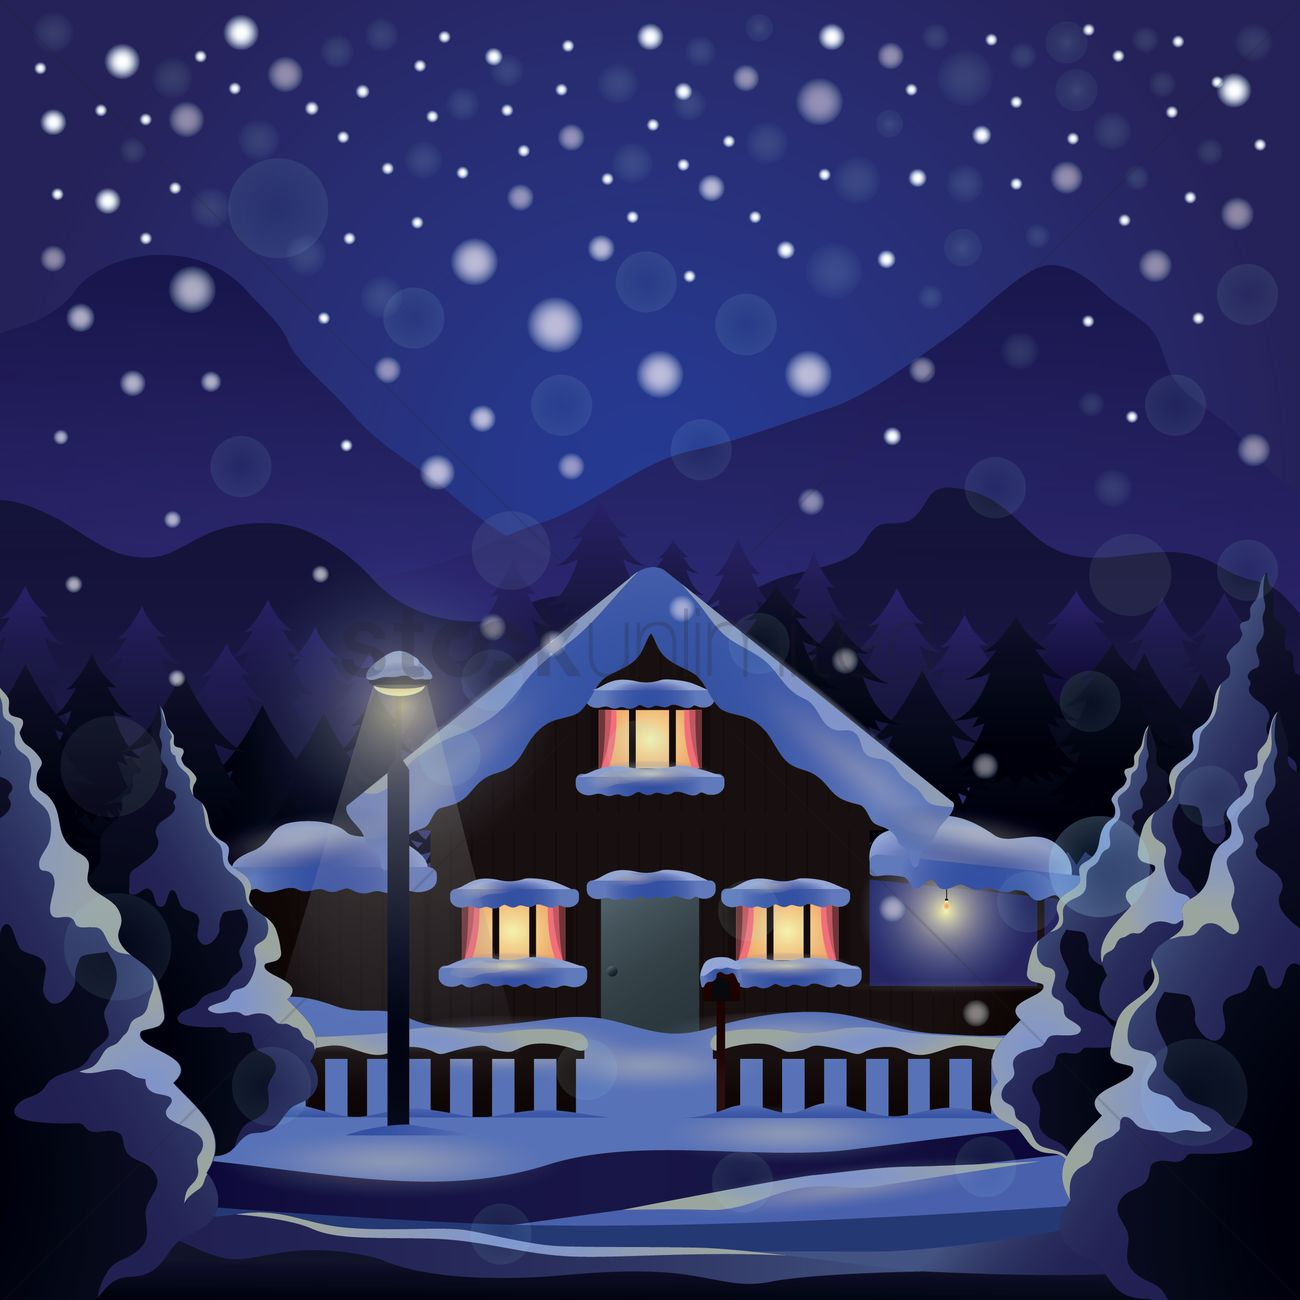 Snowing outside a house Vector Image.